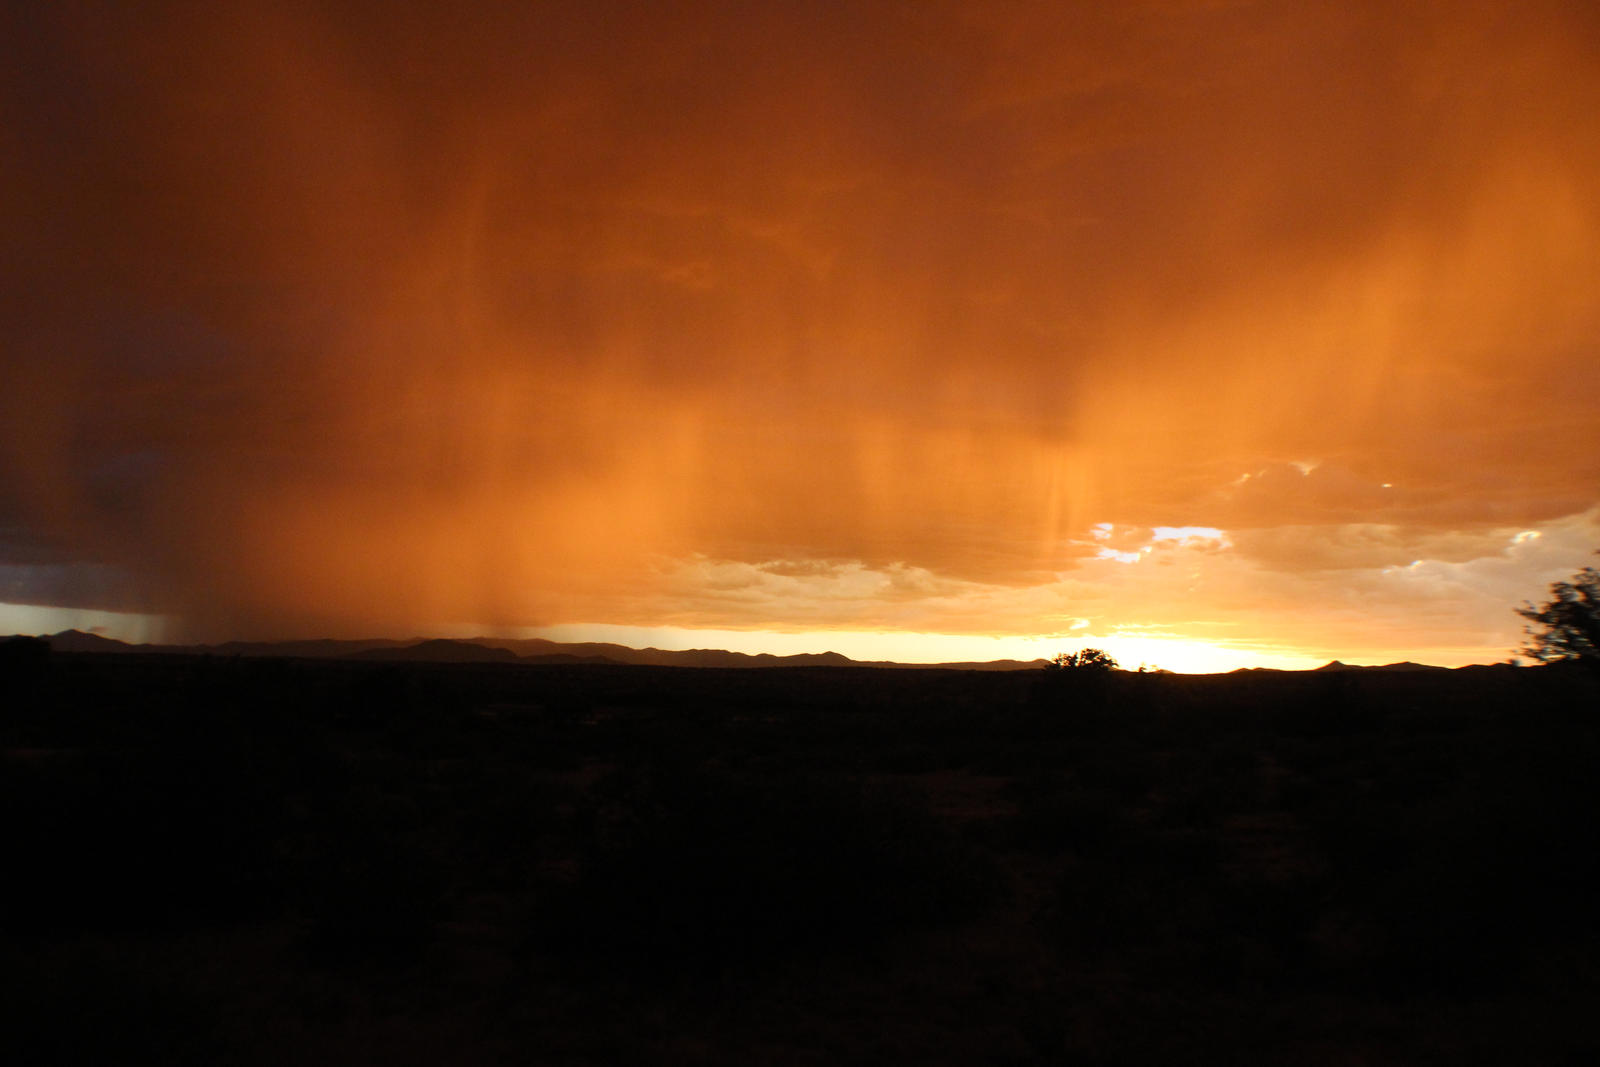 Sunset, rain, Arizona by LongBow986